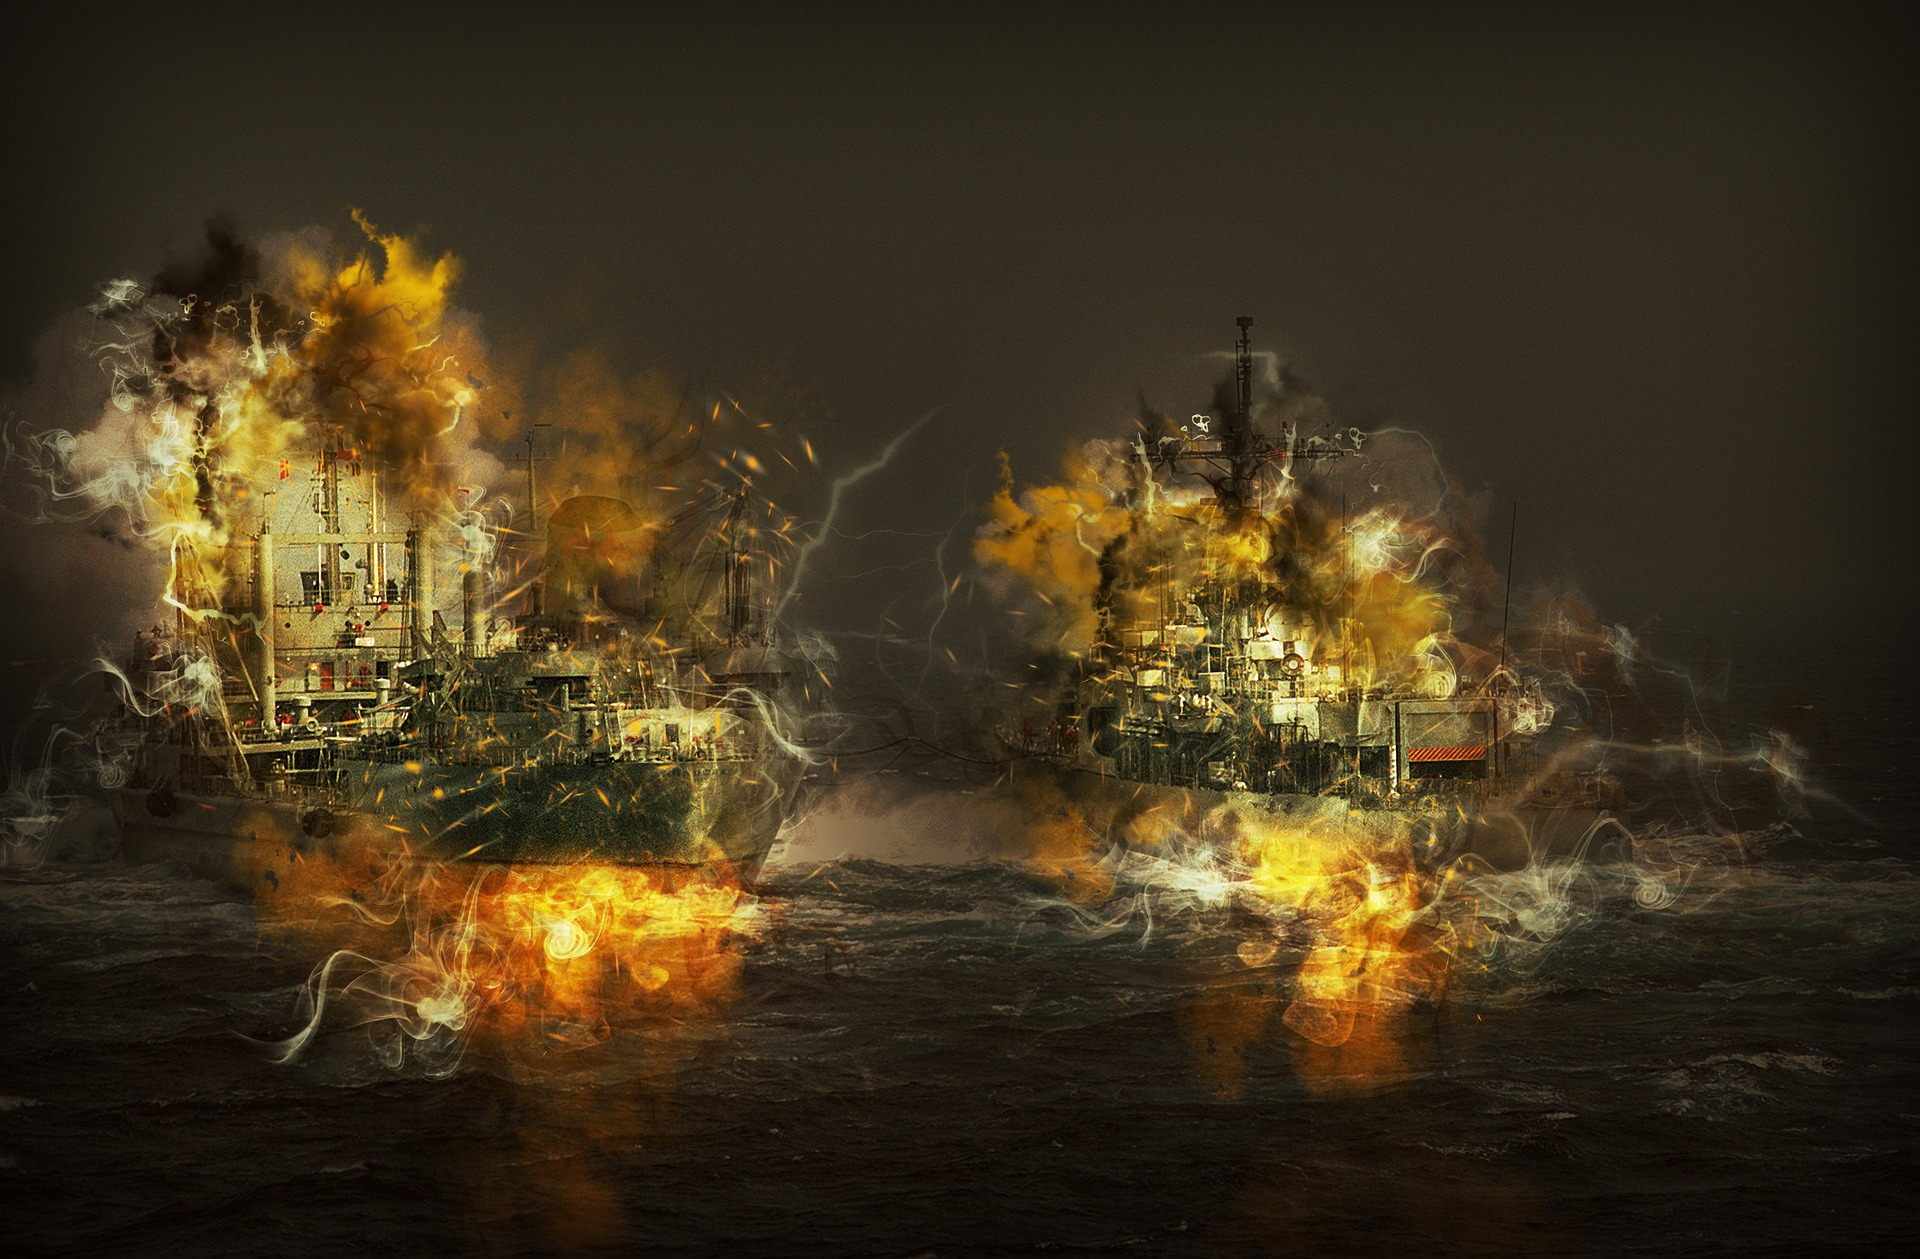 Battle of Midway essay